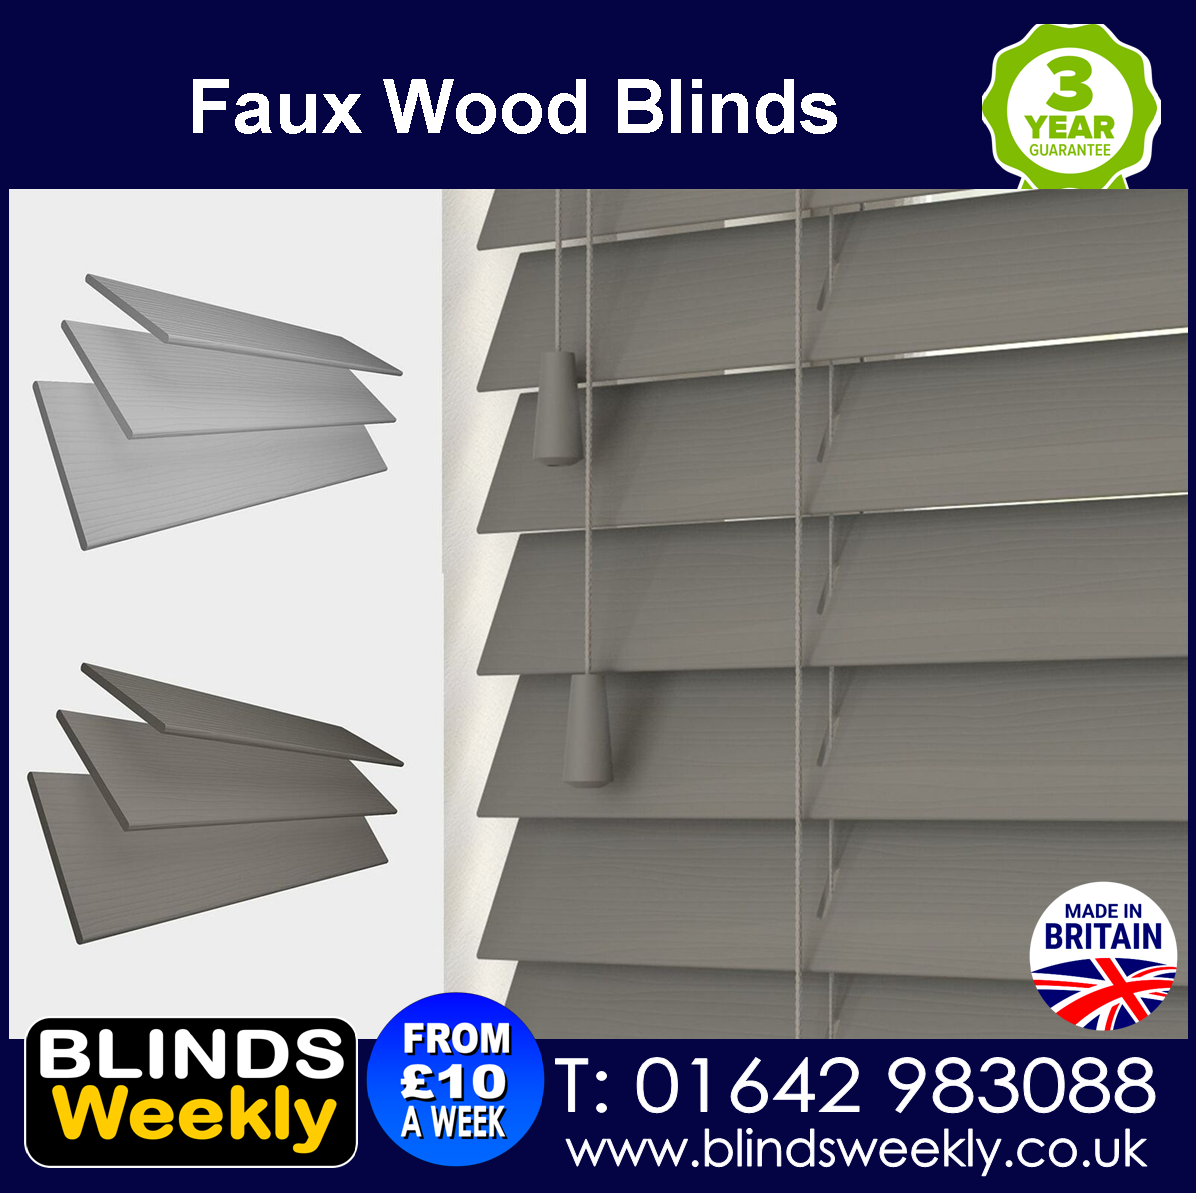 FAUX WOOD BLINDS FROM BLINDS WEEKLY 01642983088